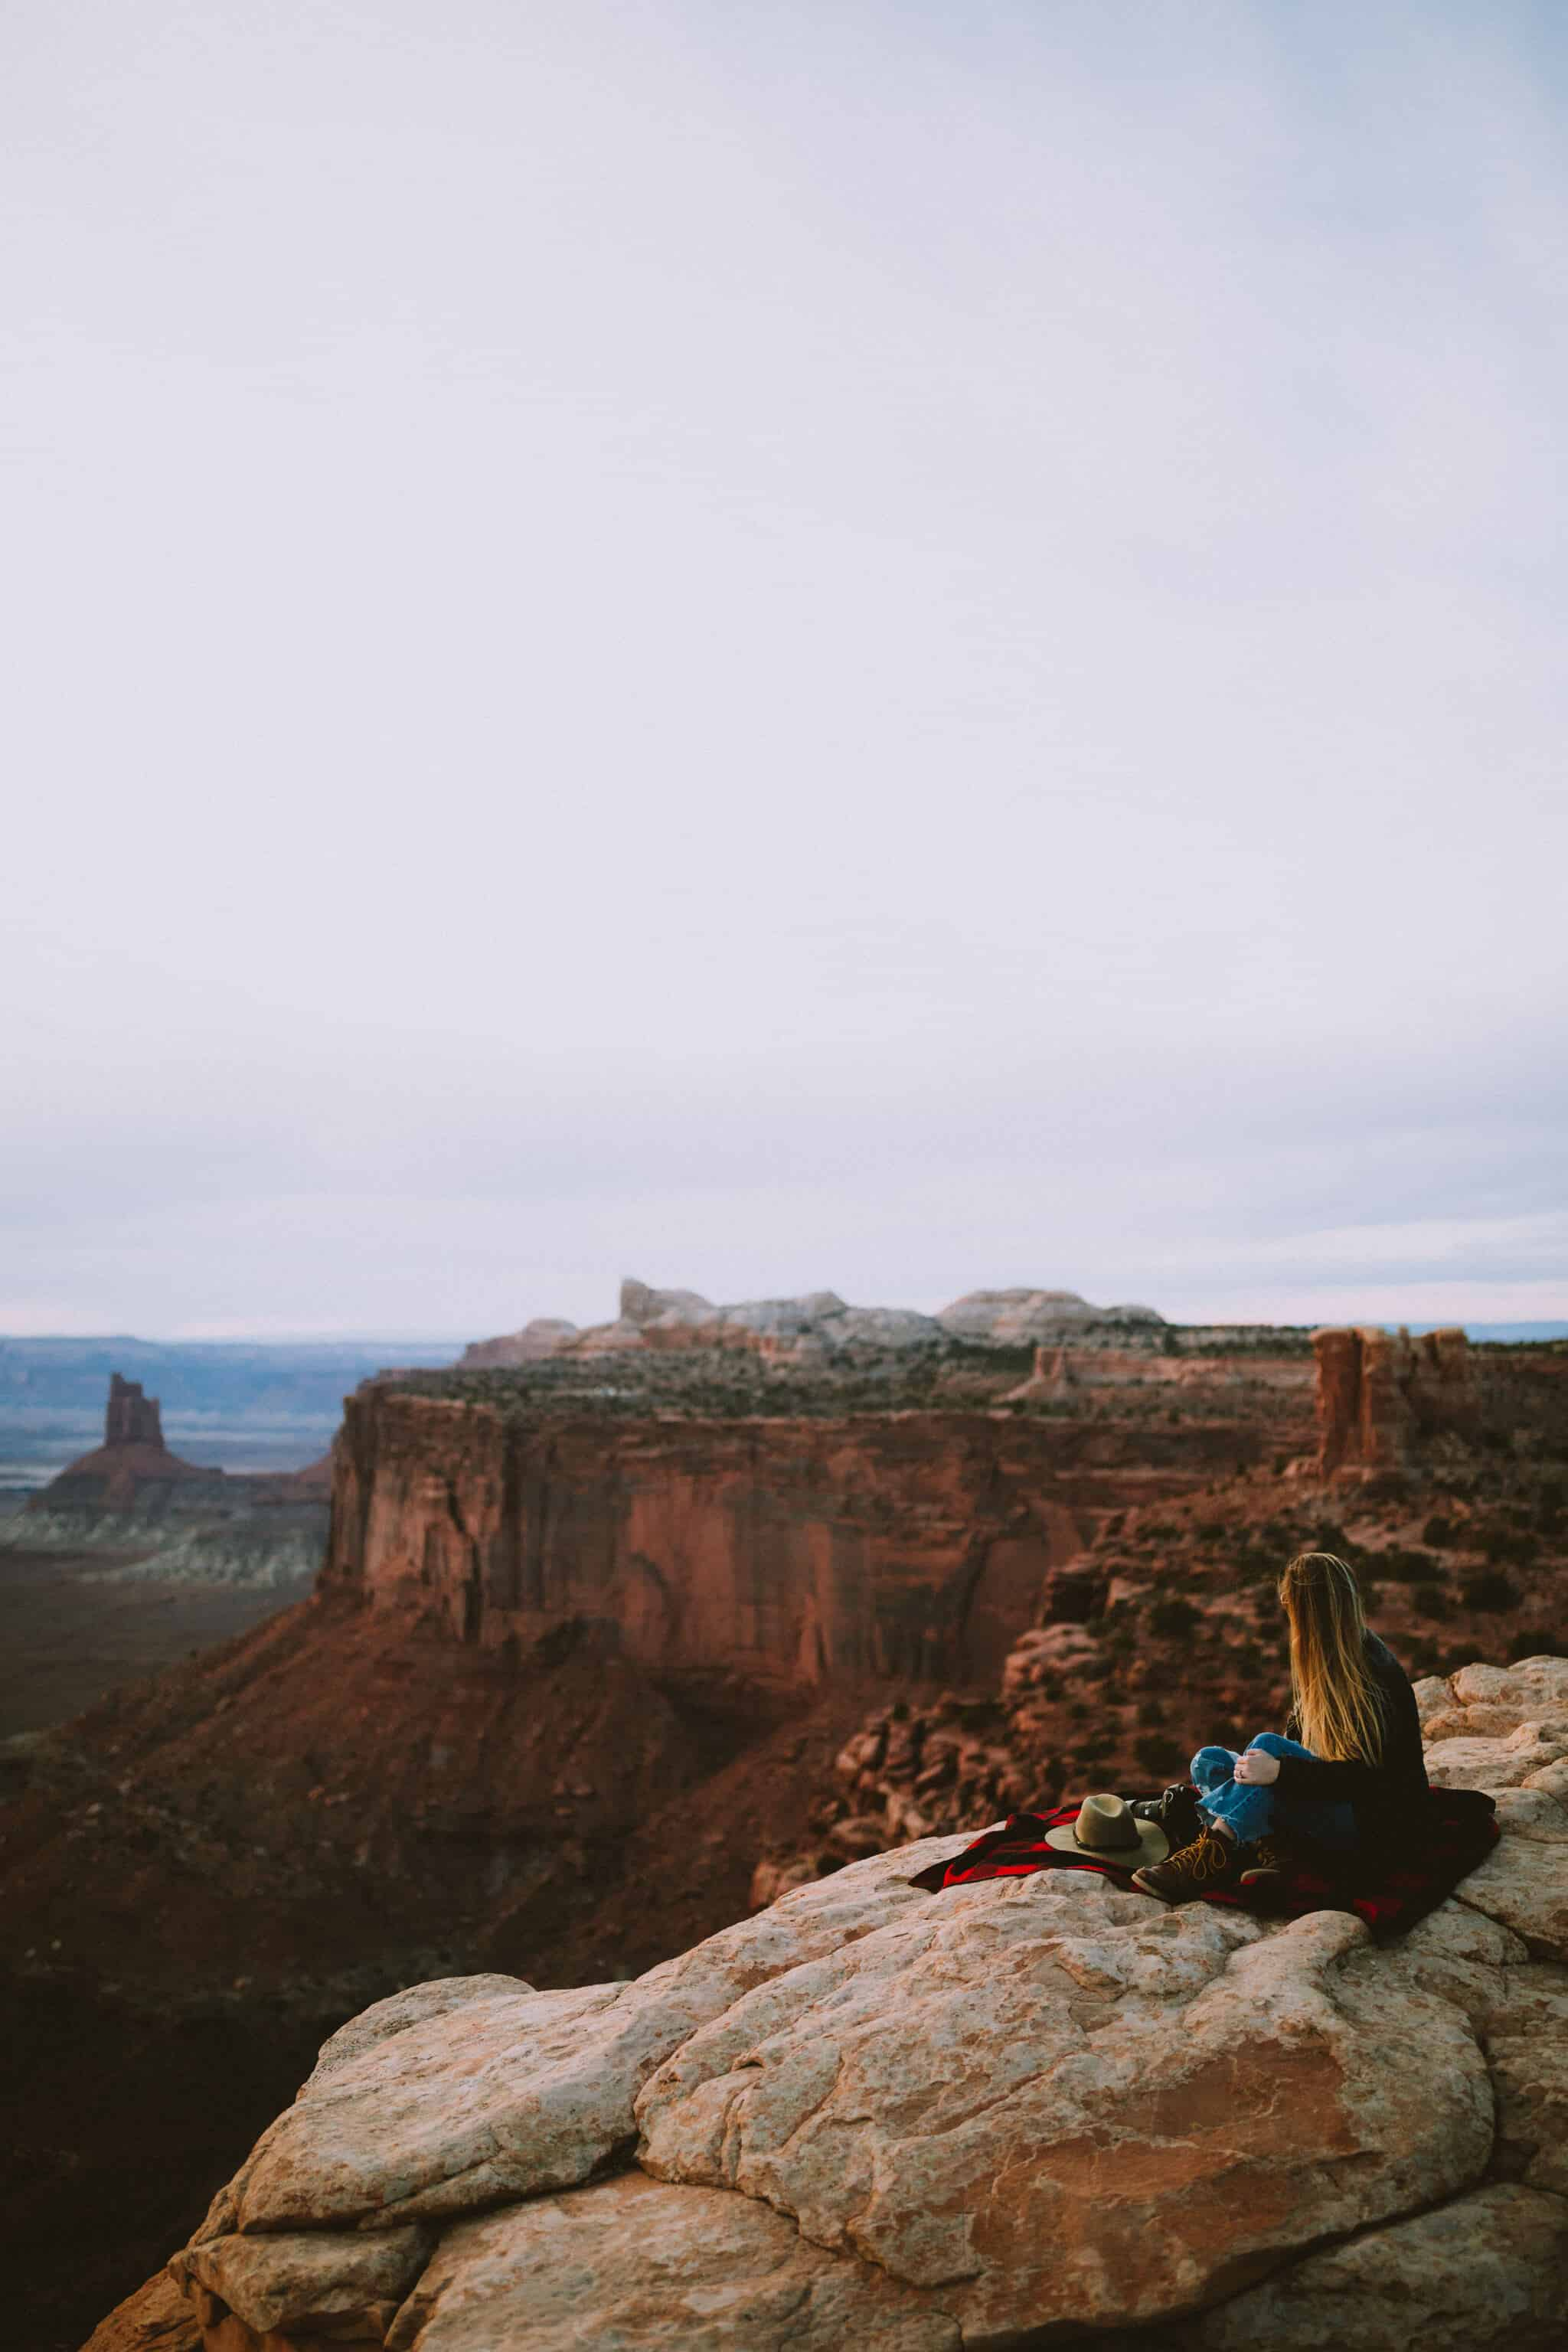 View of Candlestick Tower - Canyonlands NP - Southwest Road Trip Destination -TheMandagies.com